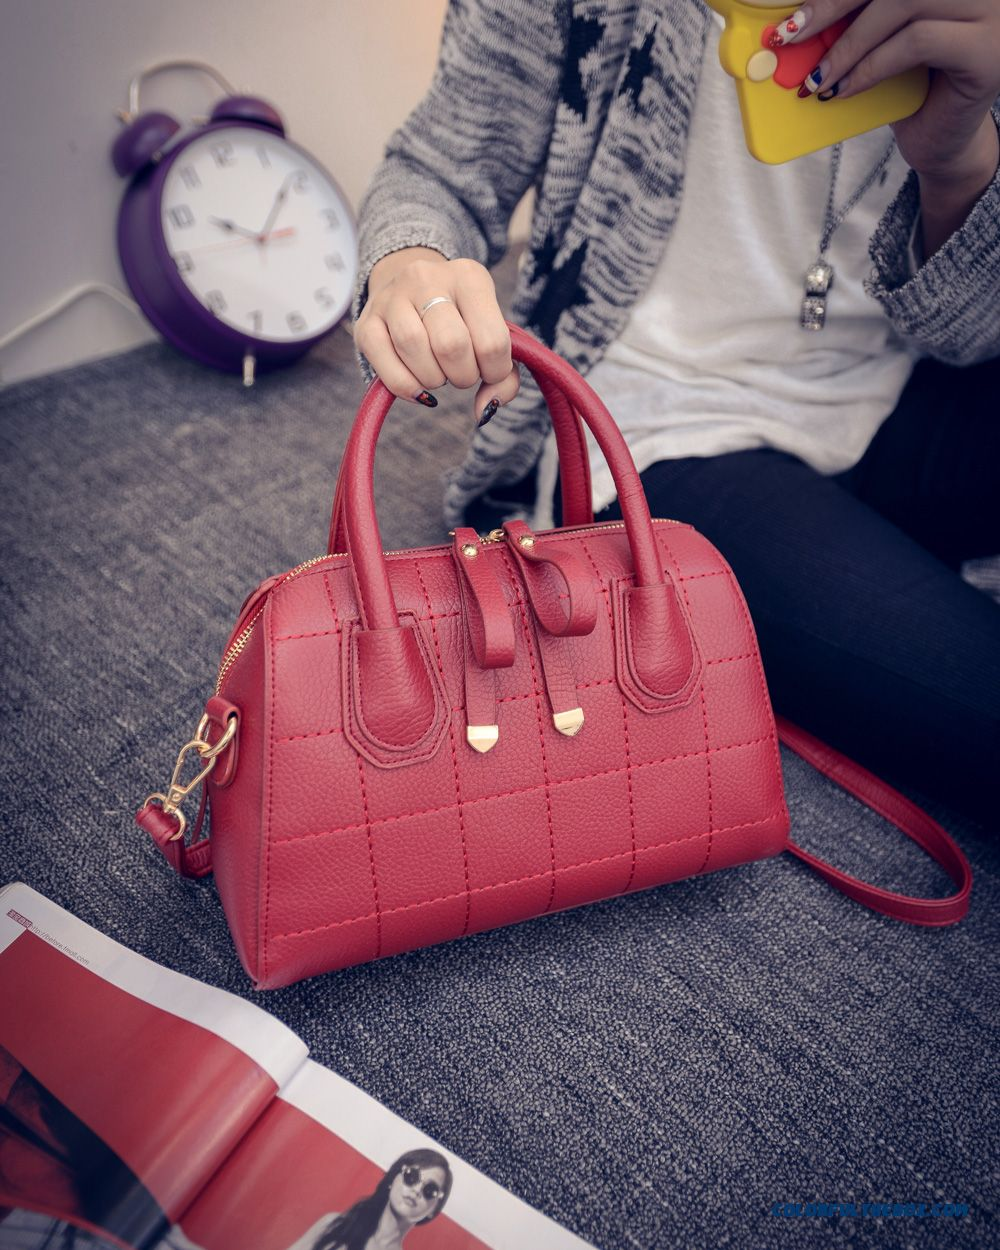 Simplicity Retro Women Bag With Double Zipper Shoulder Bags Chic